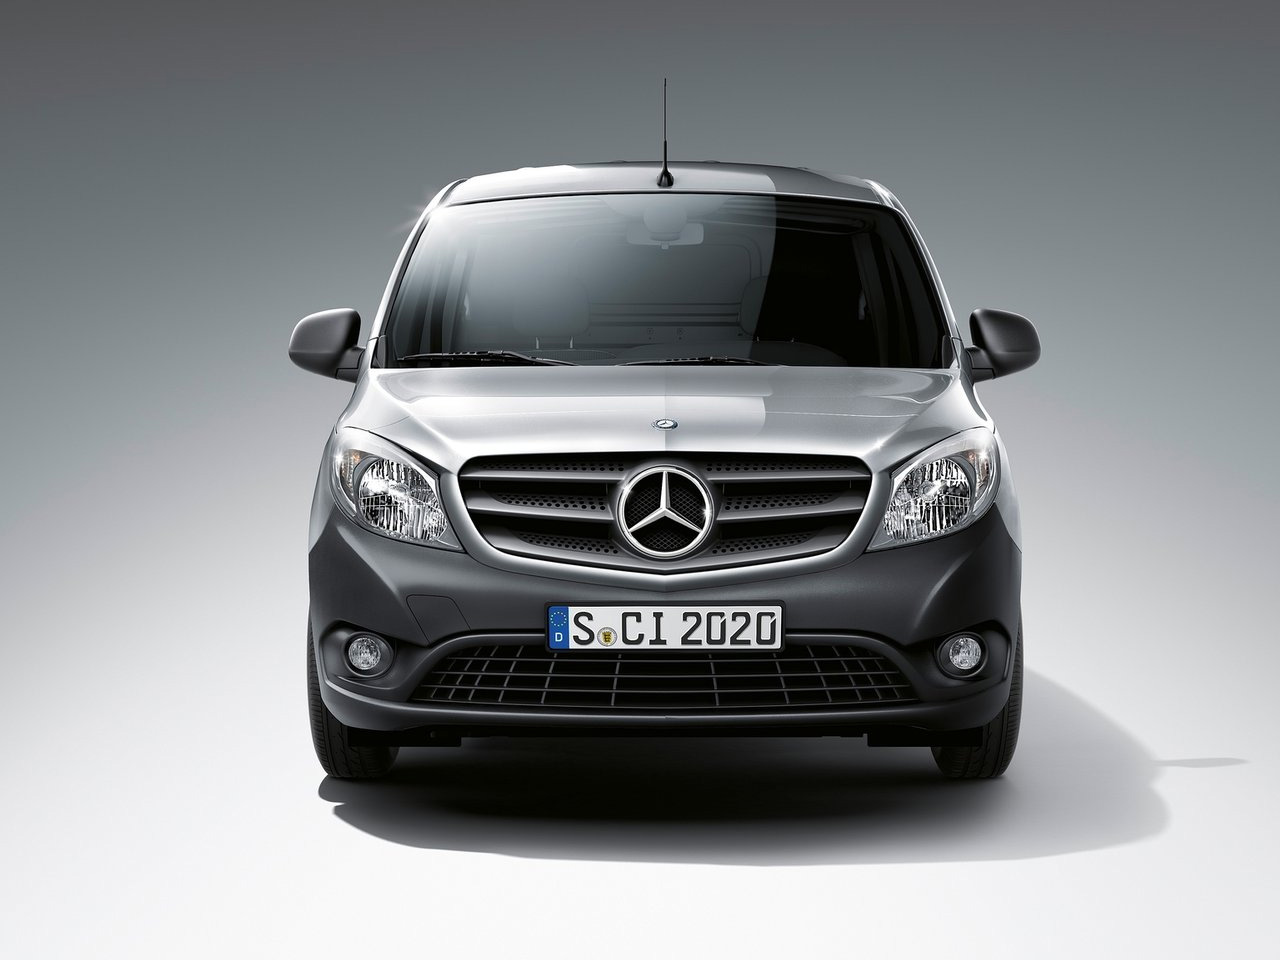 2013 mercedes benz citan cars info. Black Bedroom Furniture Sets. Home Design Ideas